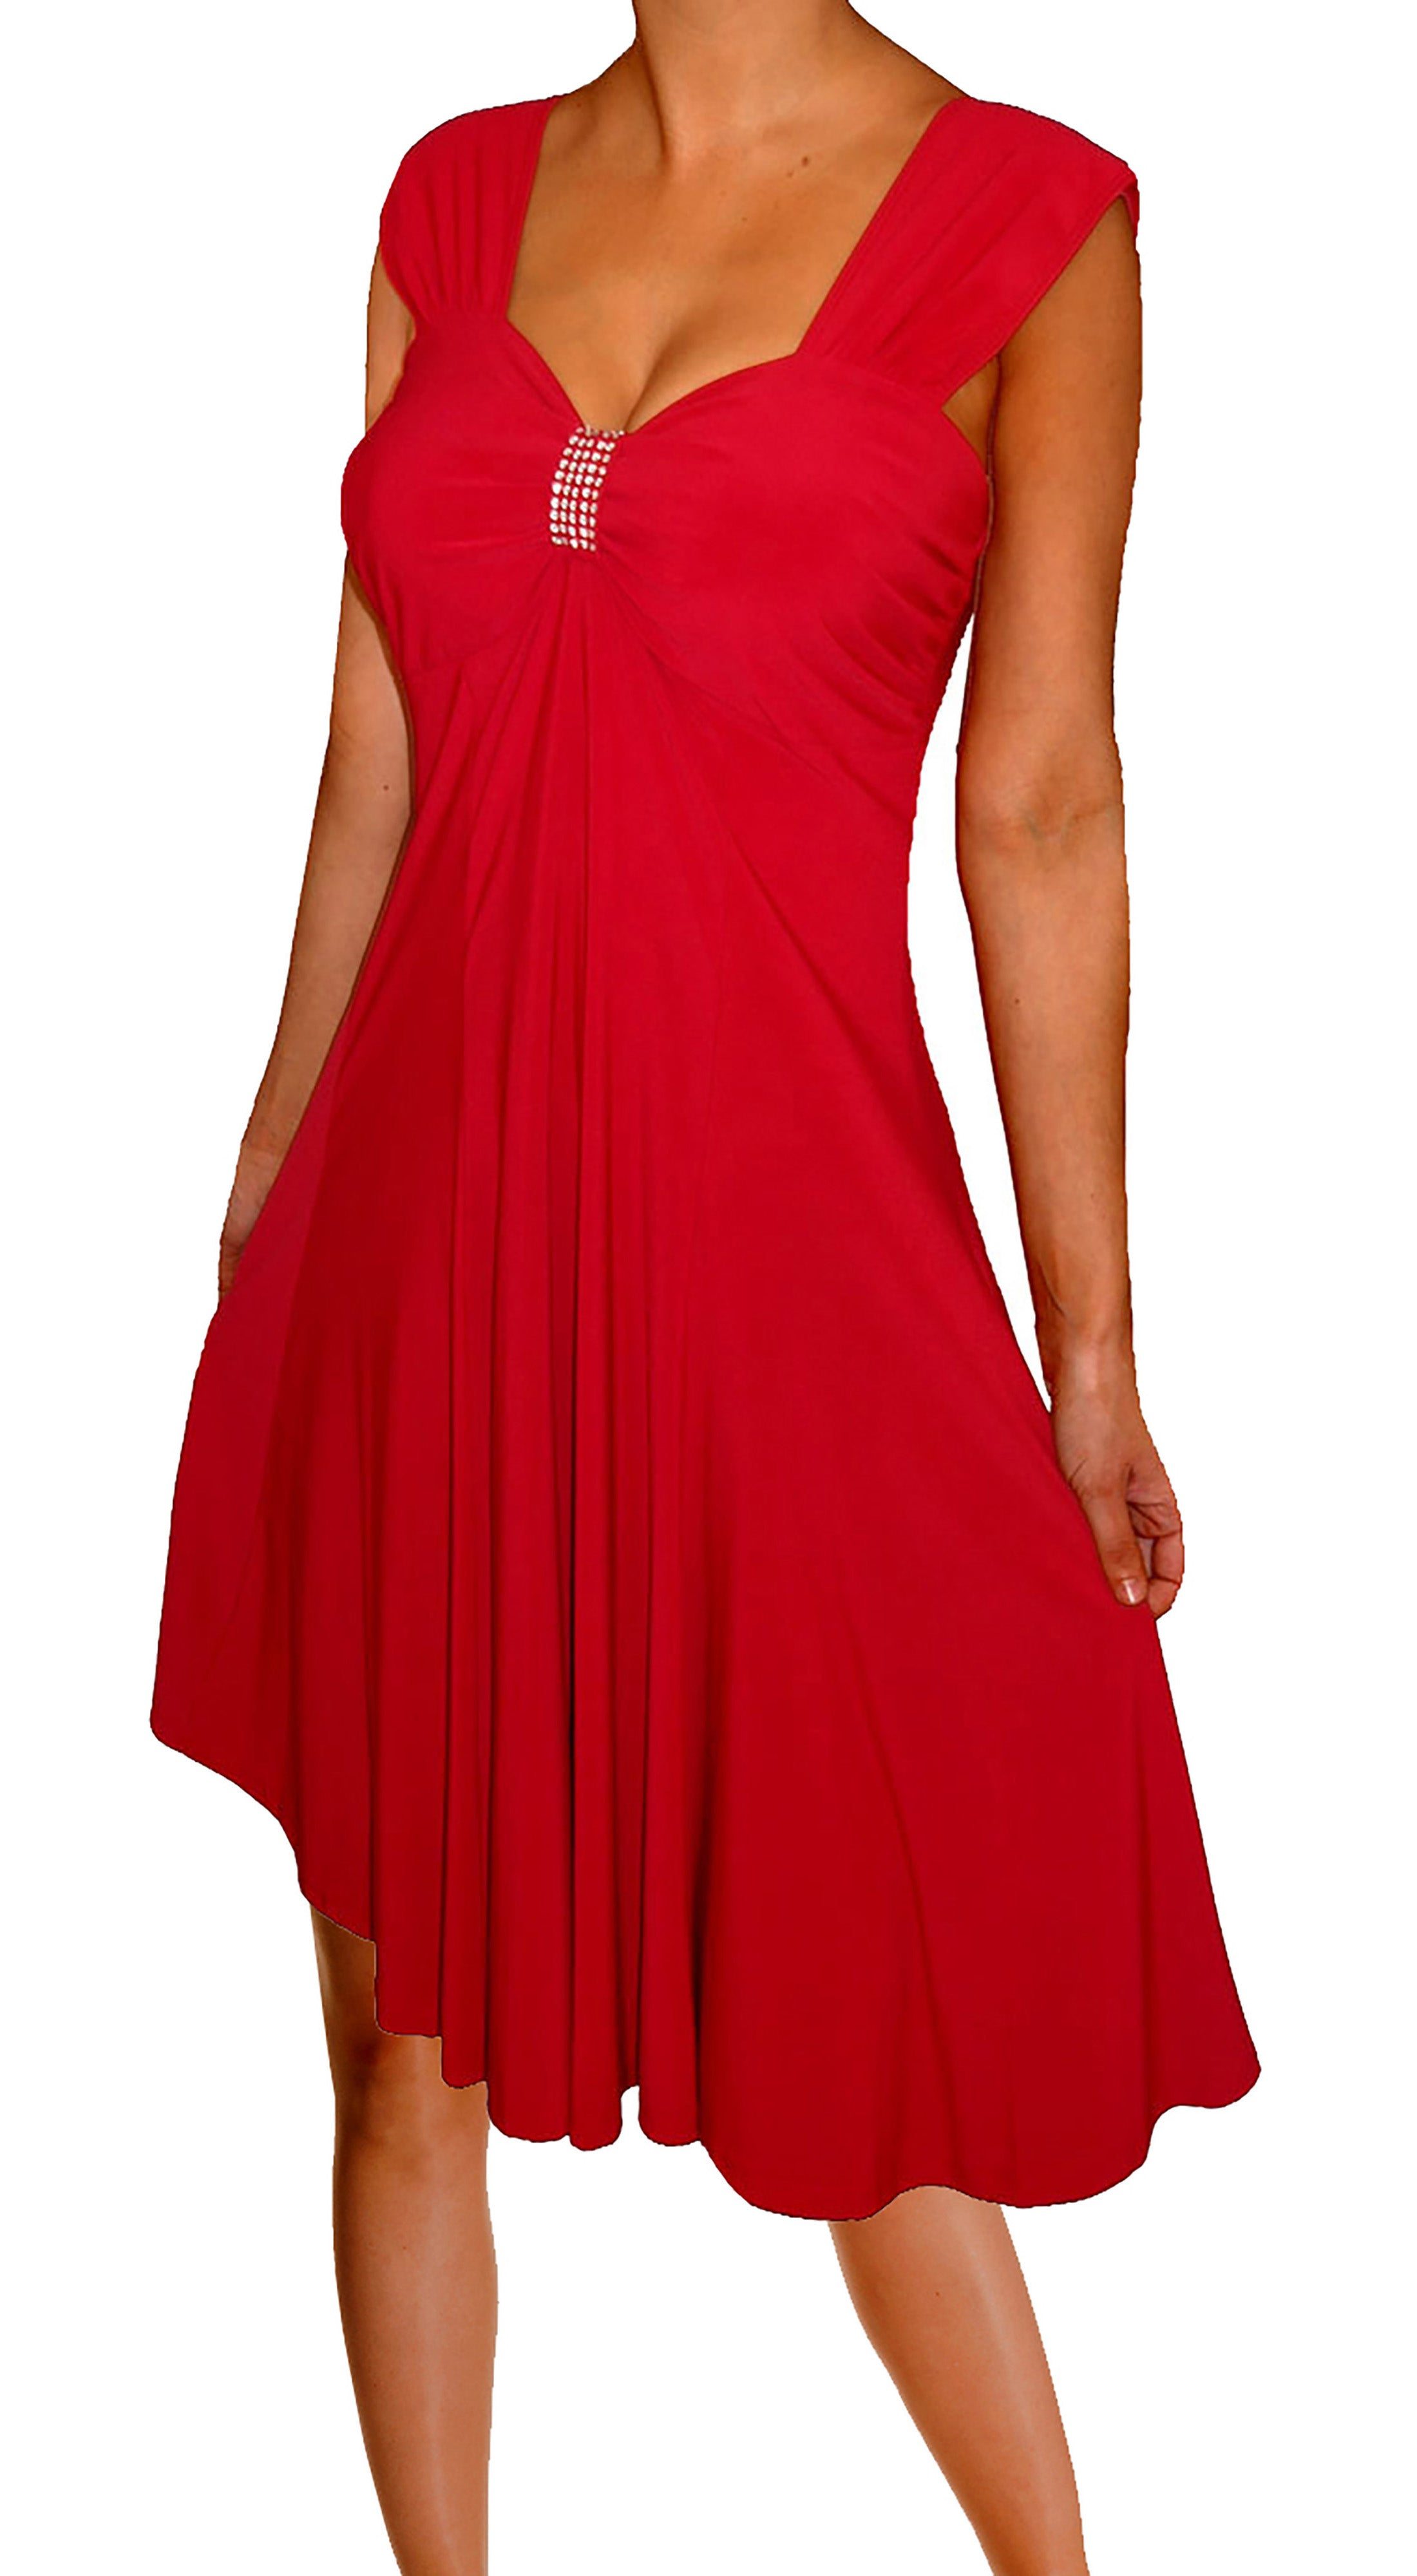 180c3176dfa Funfash Plus Size Women Empire Waist A Line Slimming Cocktail Dress Made in  USA